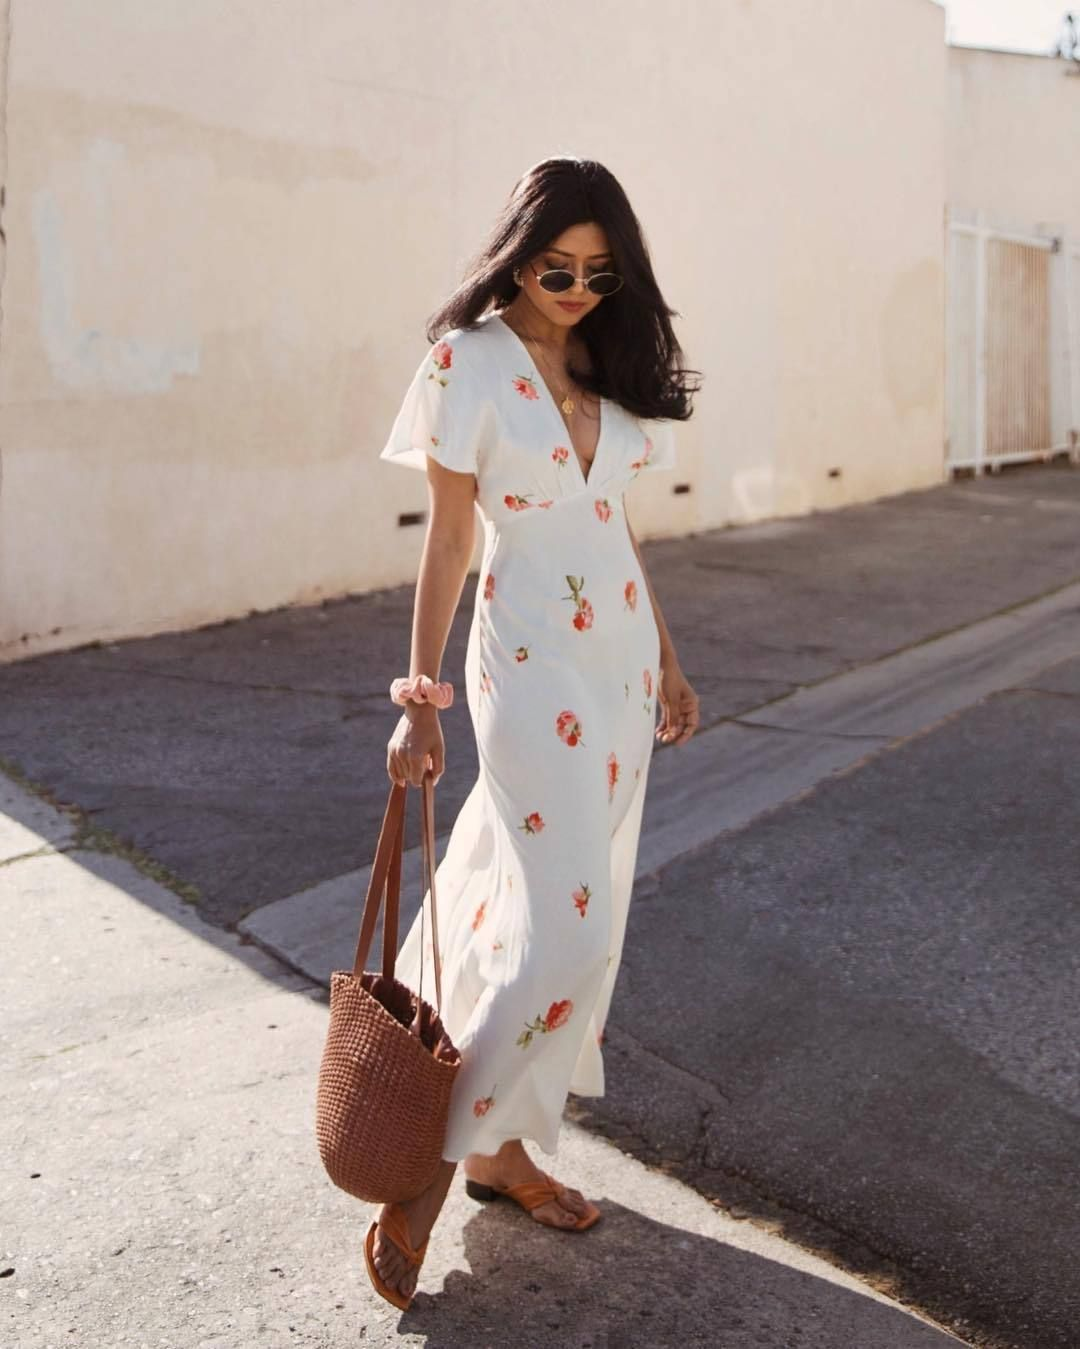 Get The Dress For 30 At Zara Wheretoget Long Summer Dresses Summer Dress Outfits Fashion [ 1349 x 1080 Pixel ]